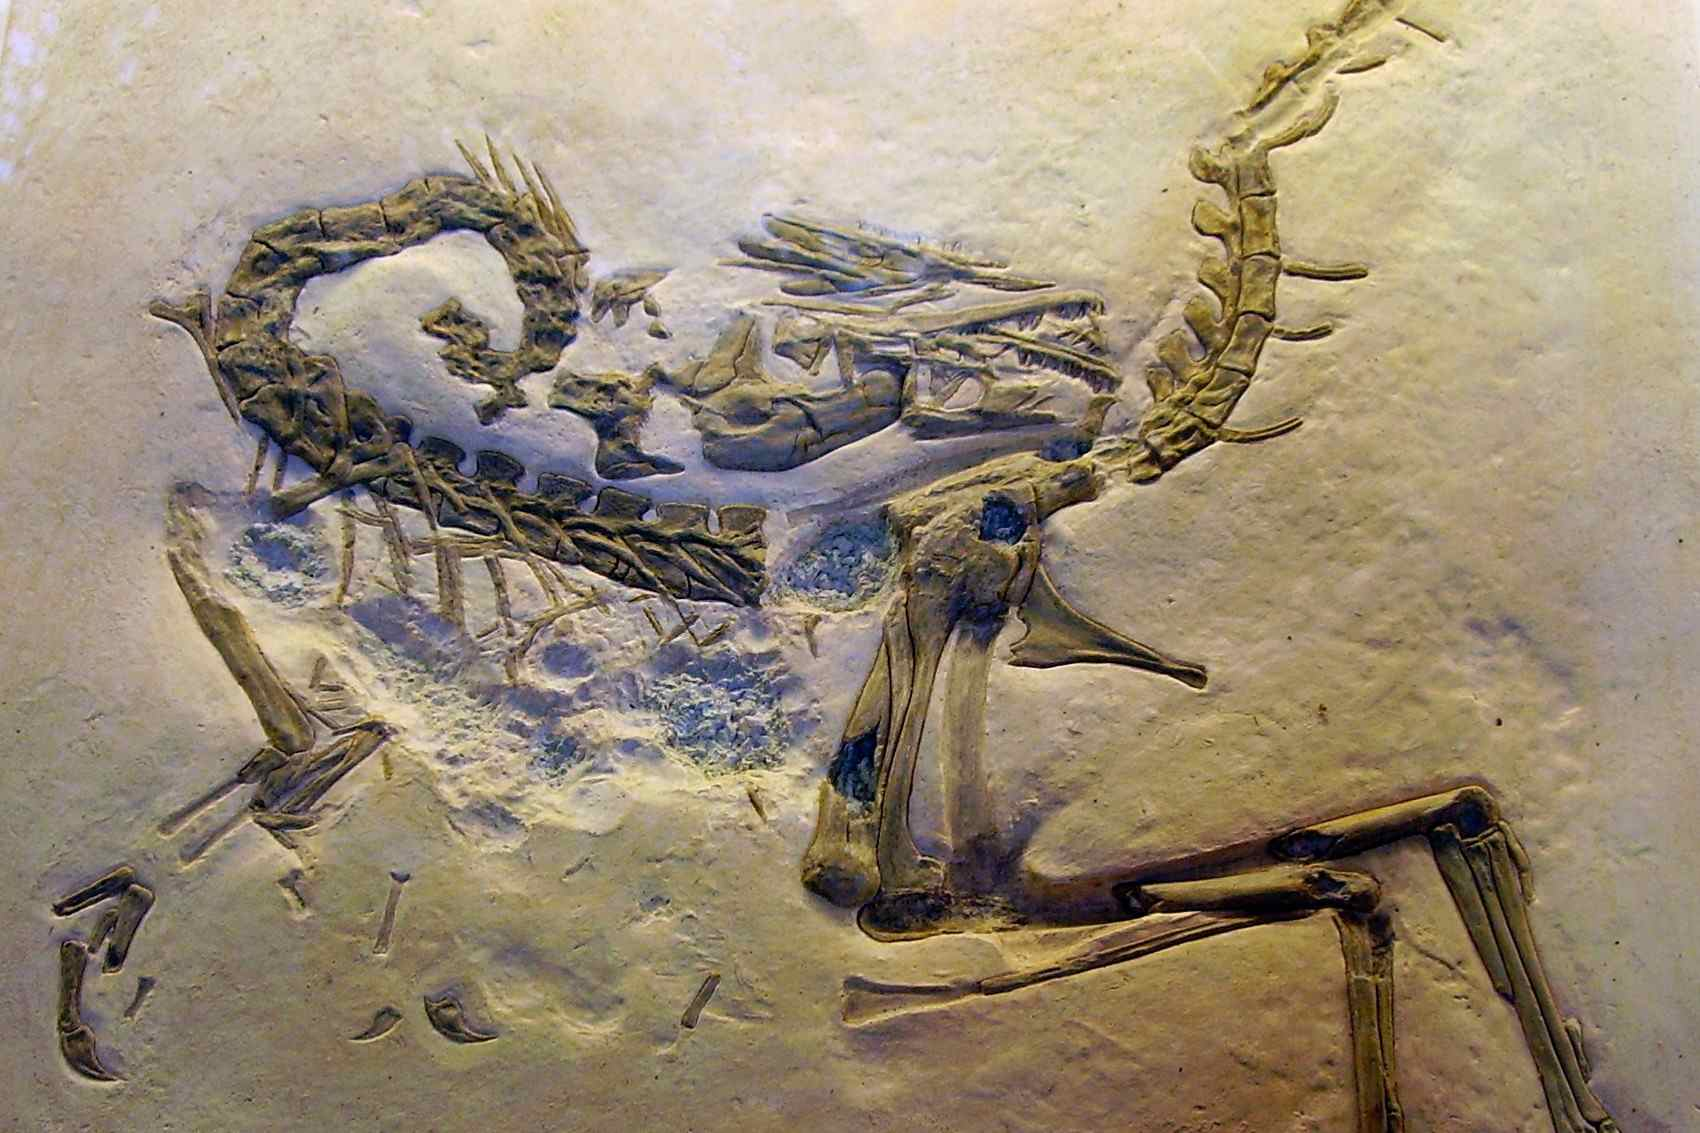 A cast of a compsognathus fossil